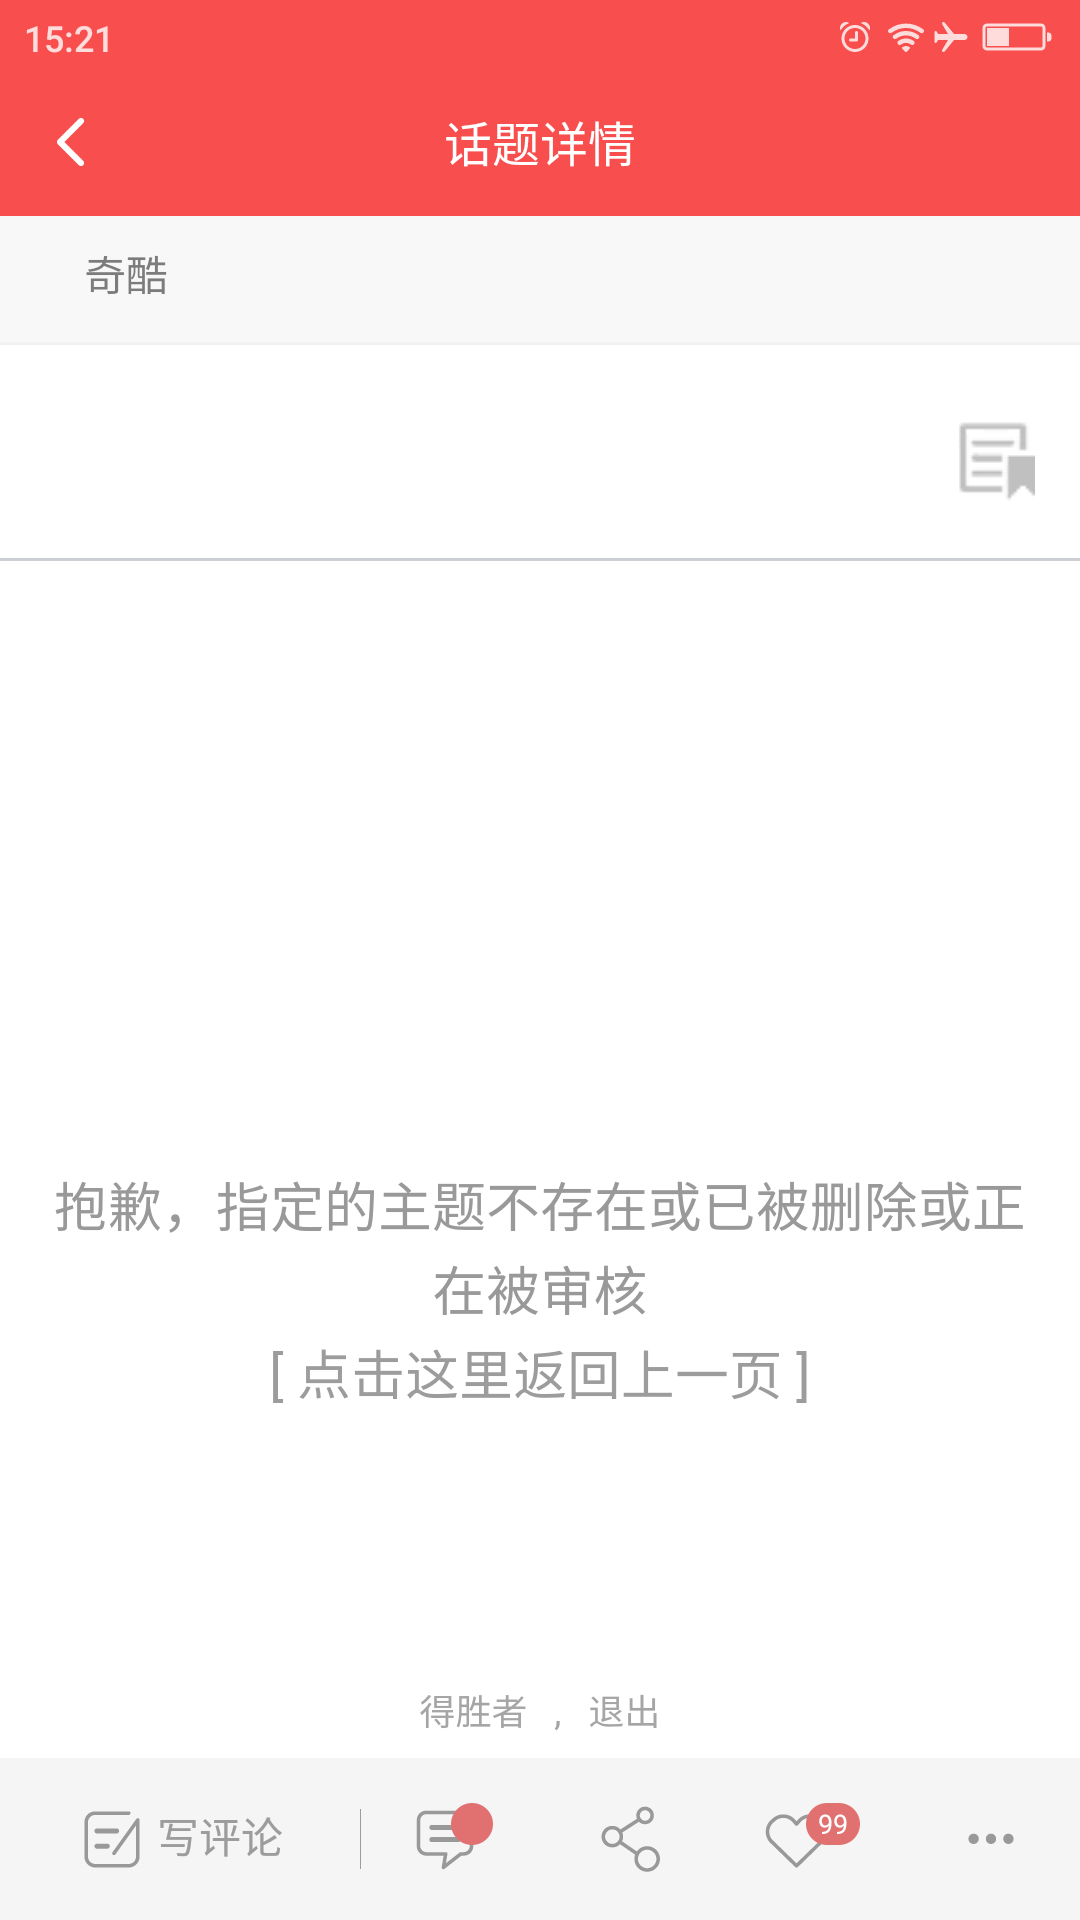 Screenshot_2015-12-30-15-21-13.png